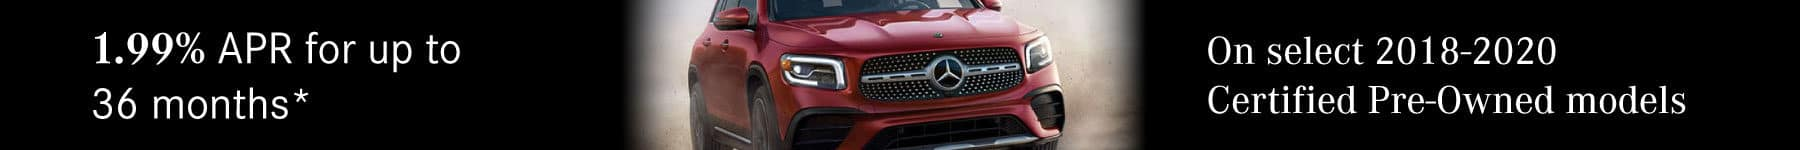 tom masano mercedes-benz certified pre owned specials